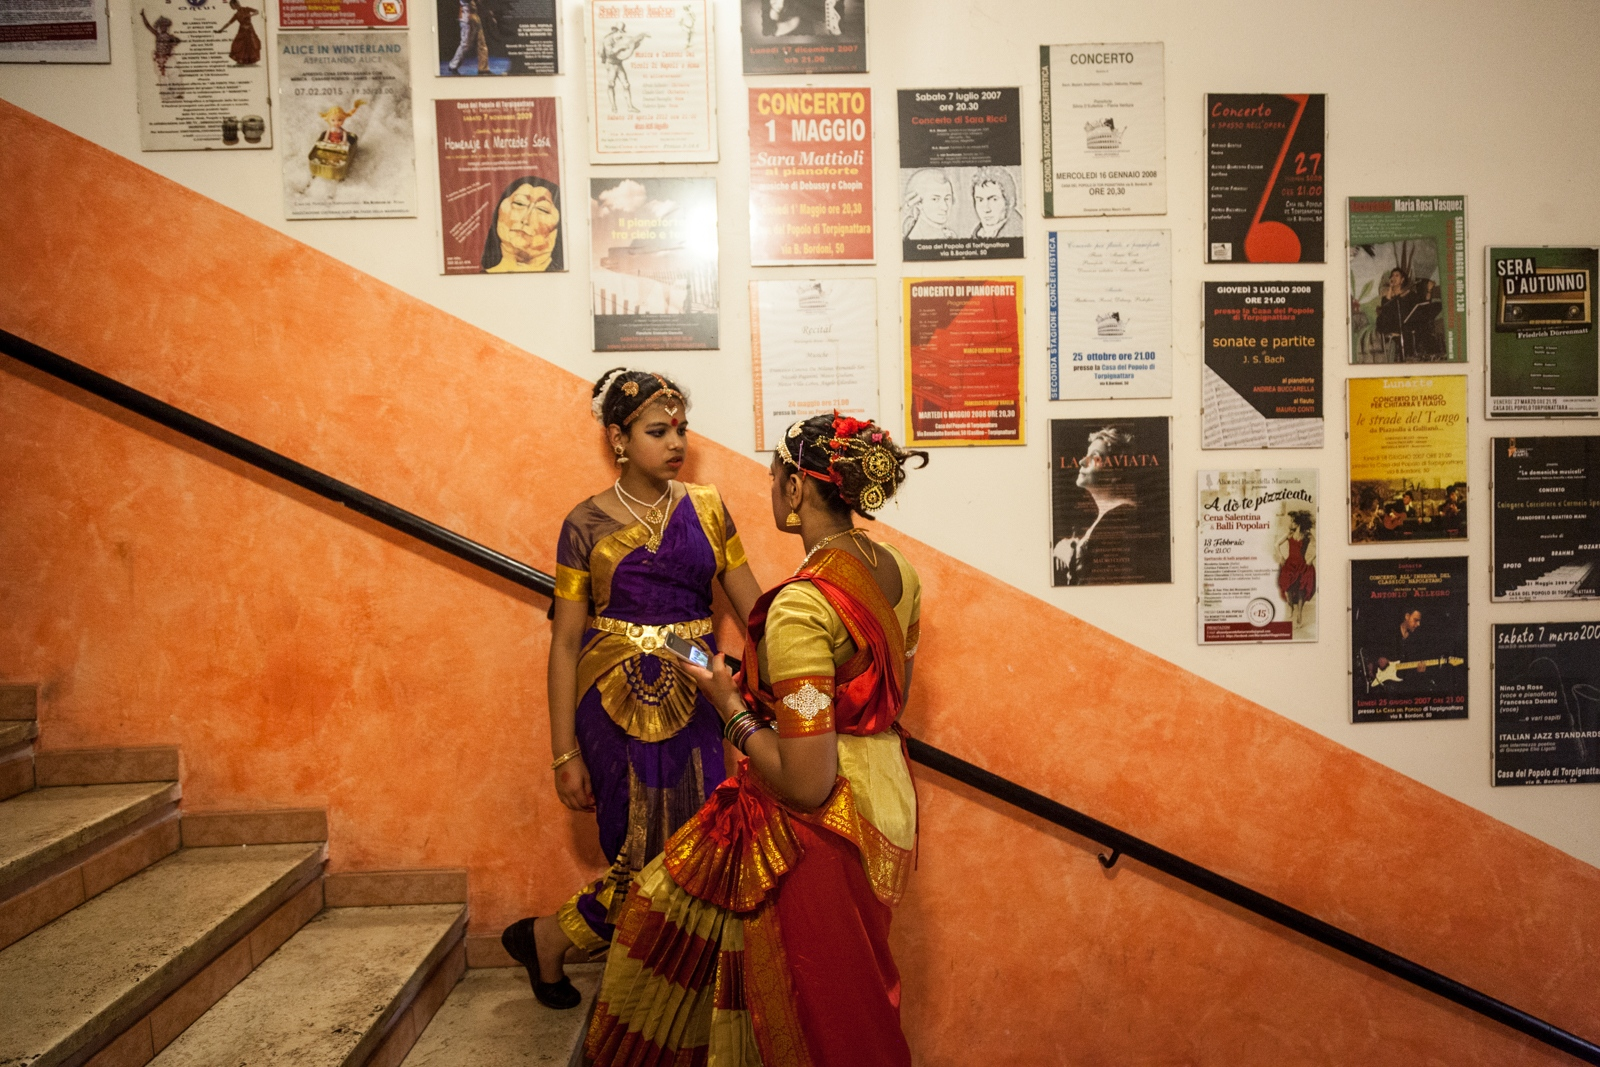 Oct. 8, 2016 - Two girls talk outside the theater during  Durga Puja celebration that took place in a community center in Torpignattara, a working class neighborhood in southeastern Rome, where many different immigrant communities live and work.